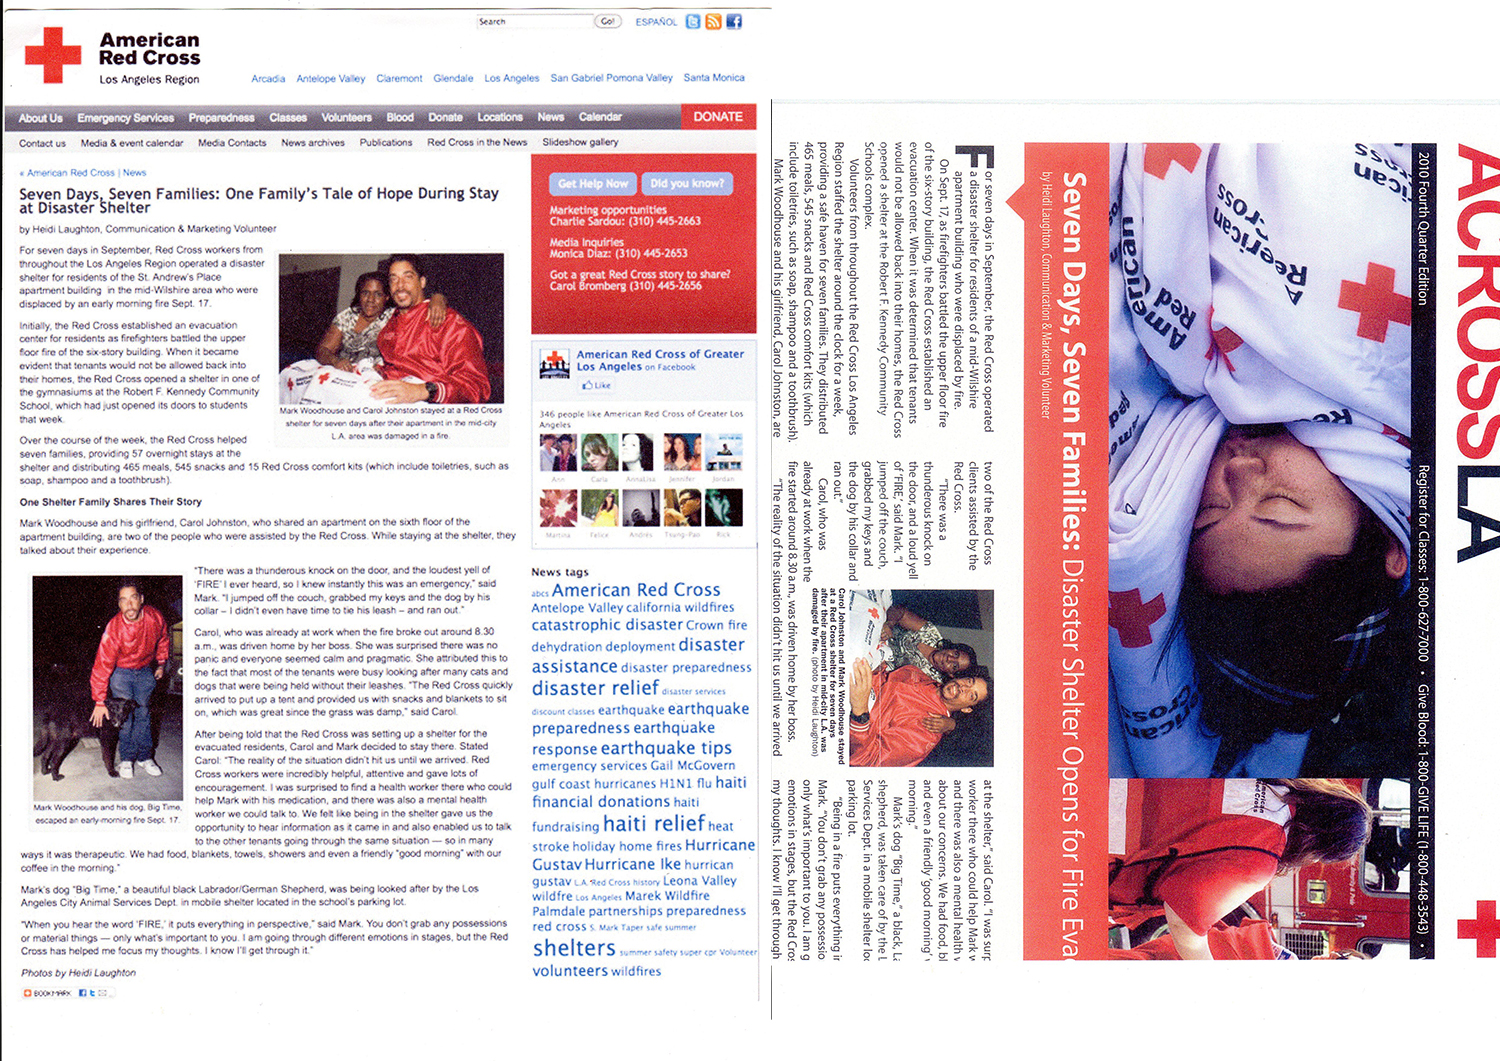 excerpts from Red cross reports